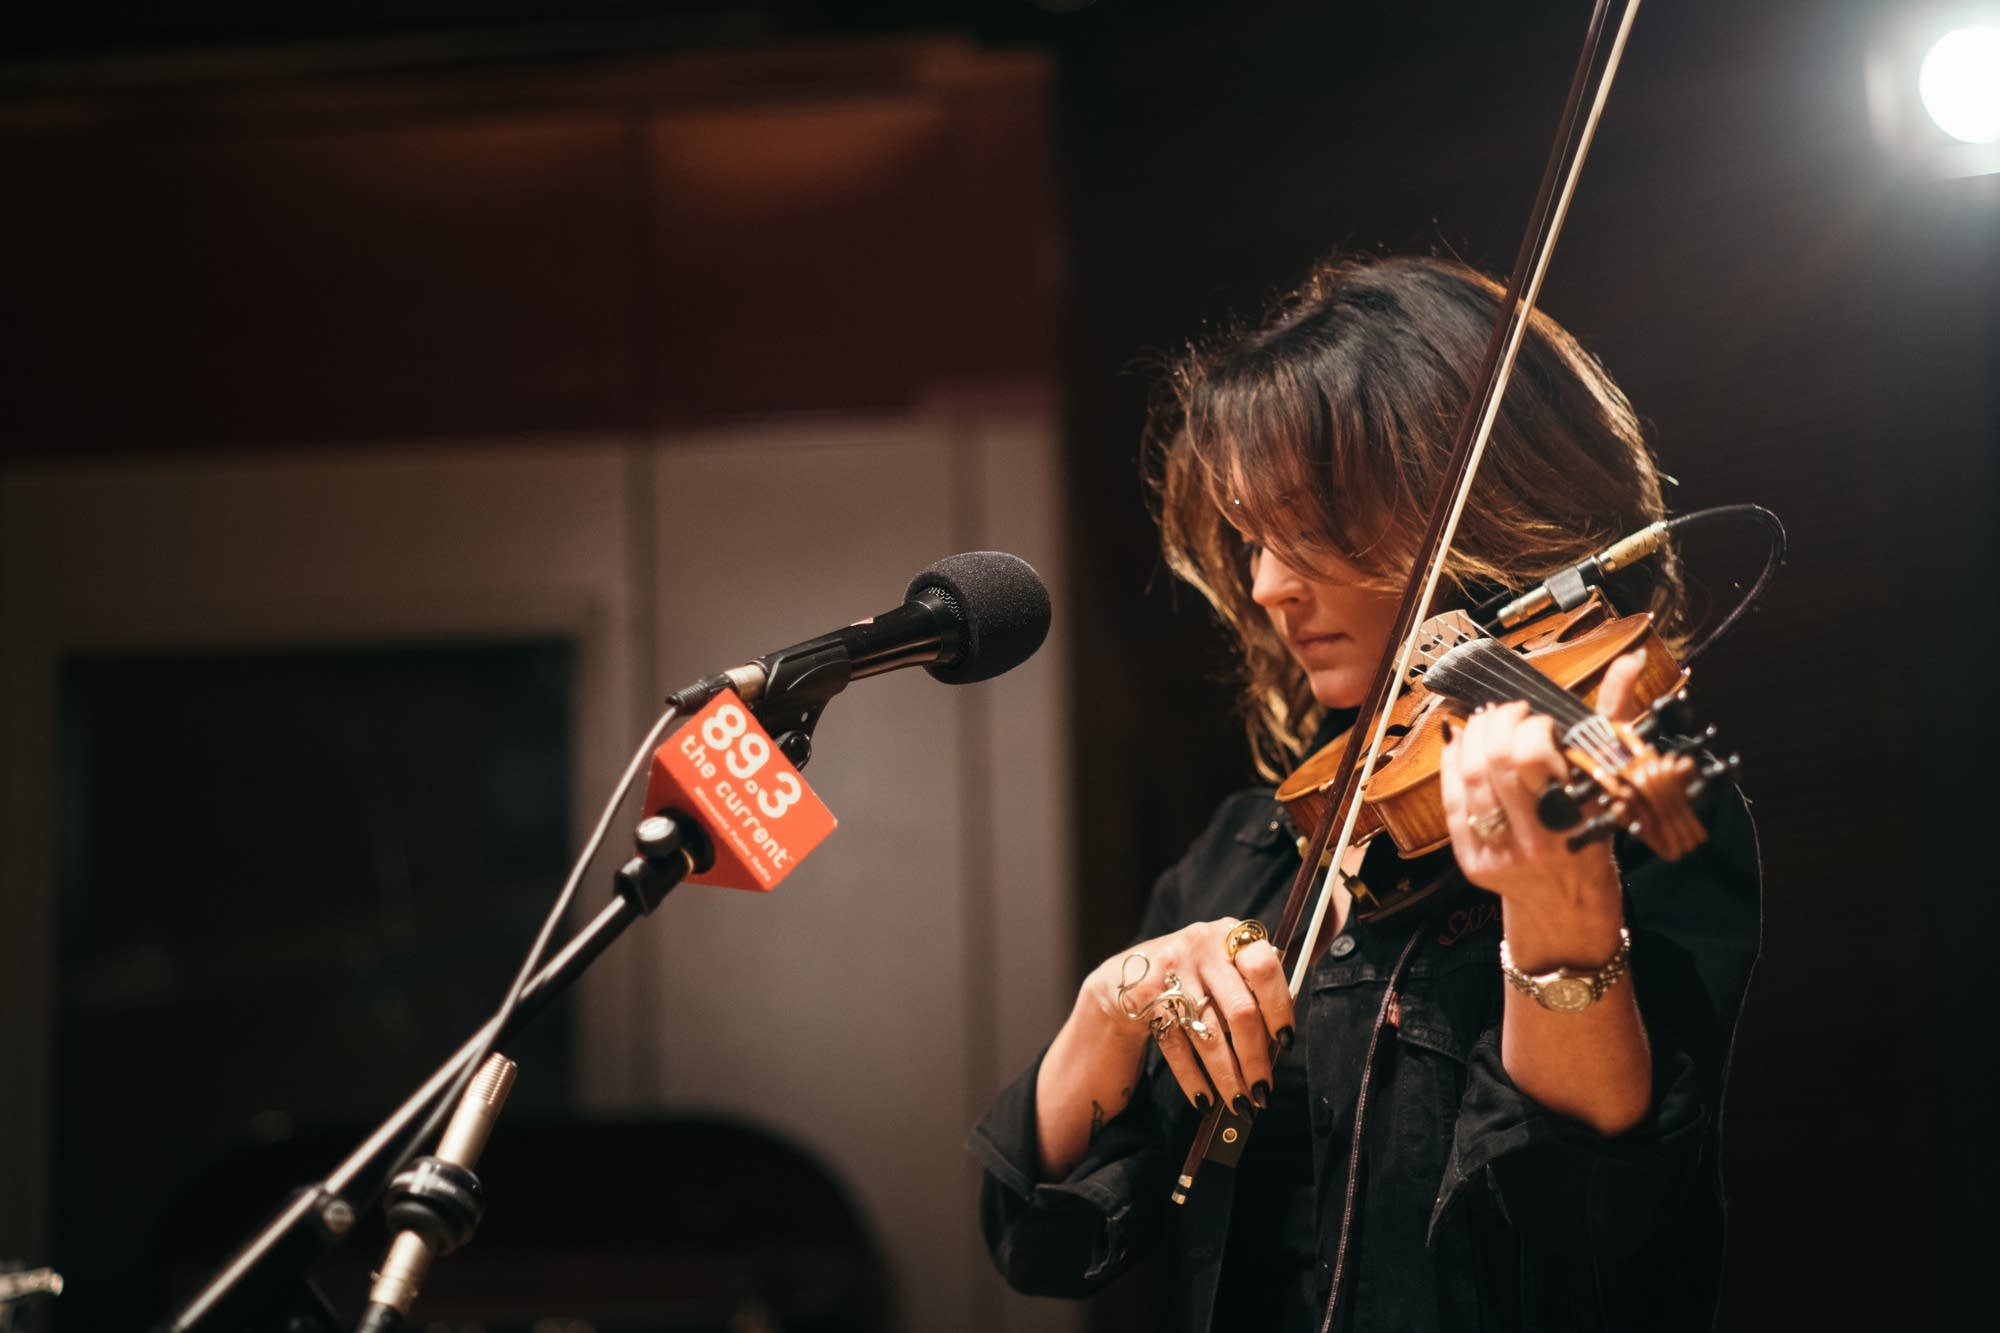 Amanda Shires performs in The Current studio